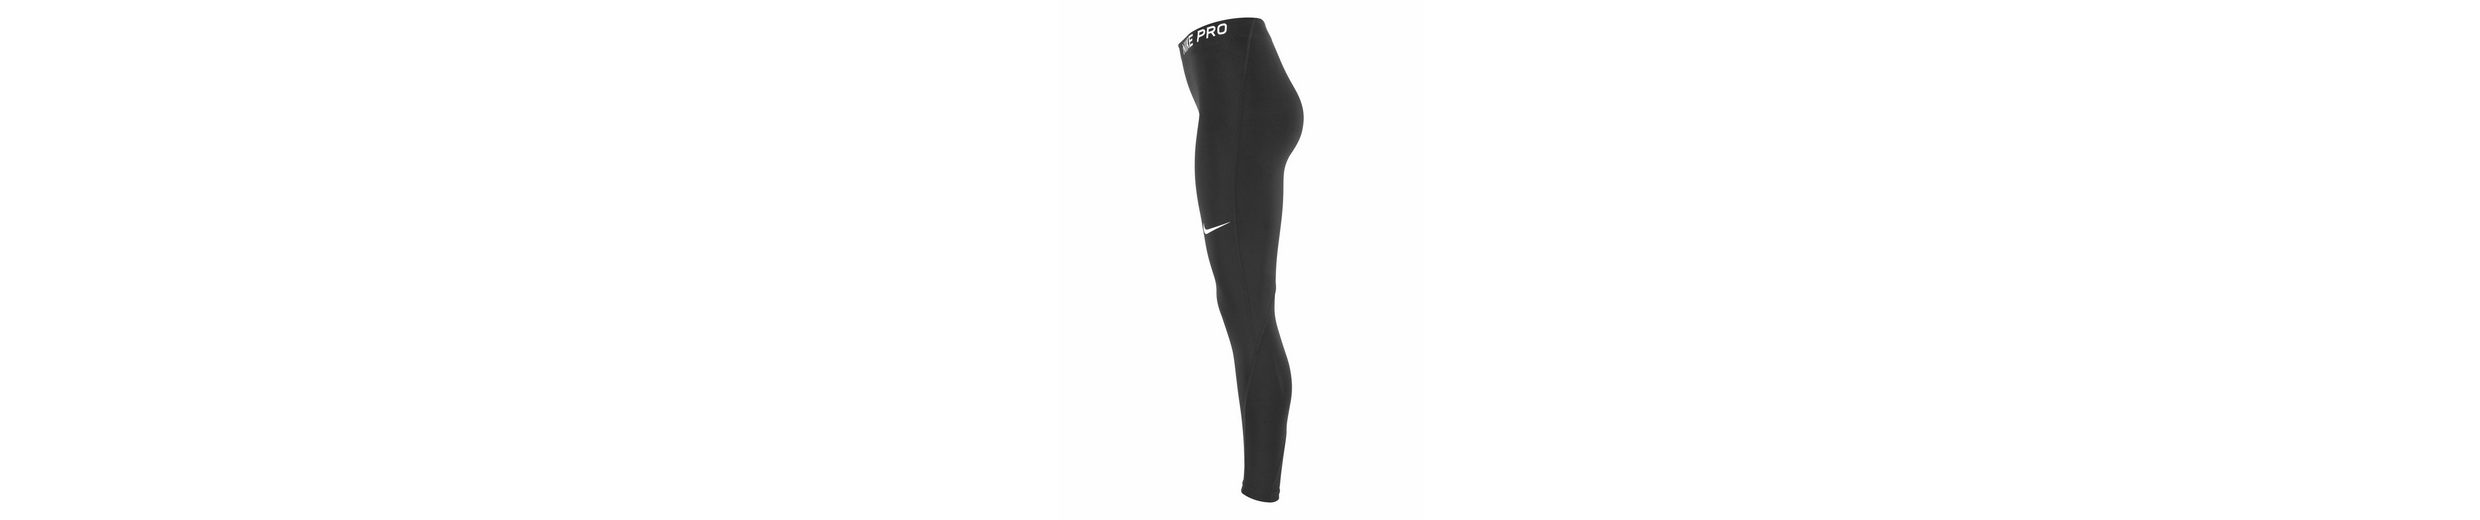 Nike Funktionstights PRO TIGHT Online-Shopping-Outlet Verkauf VPjPc0